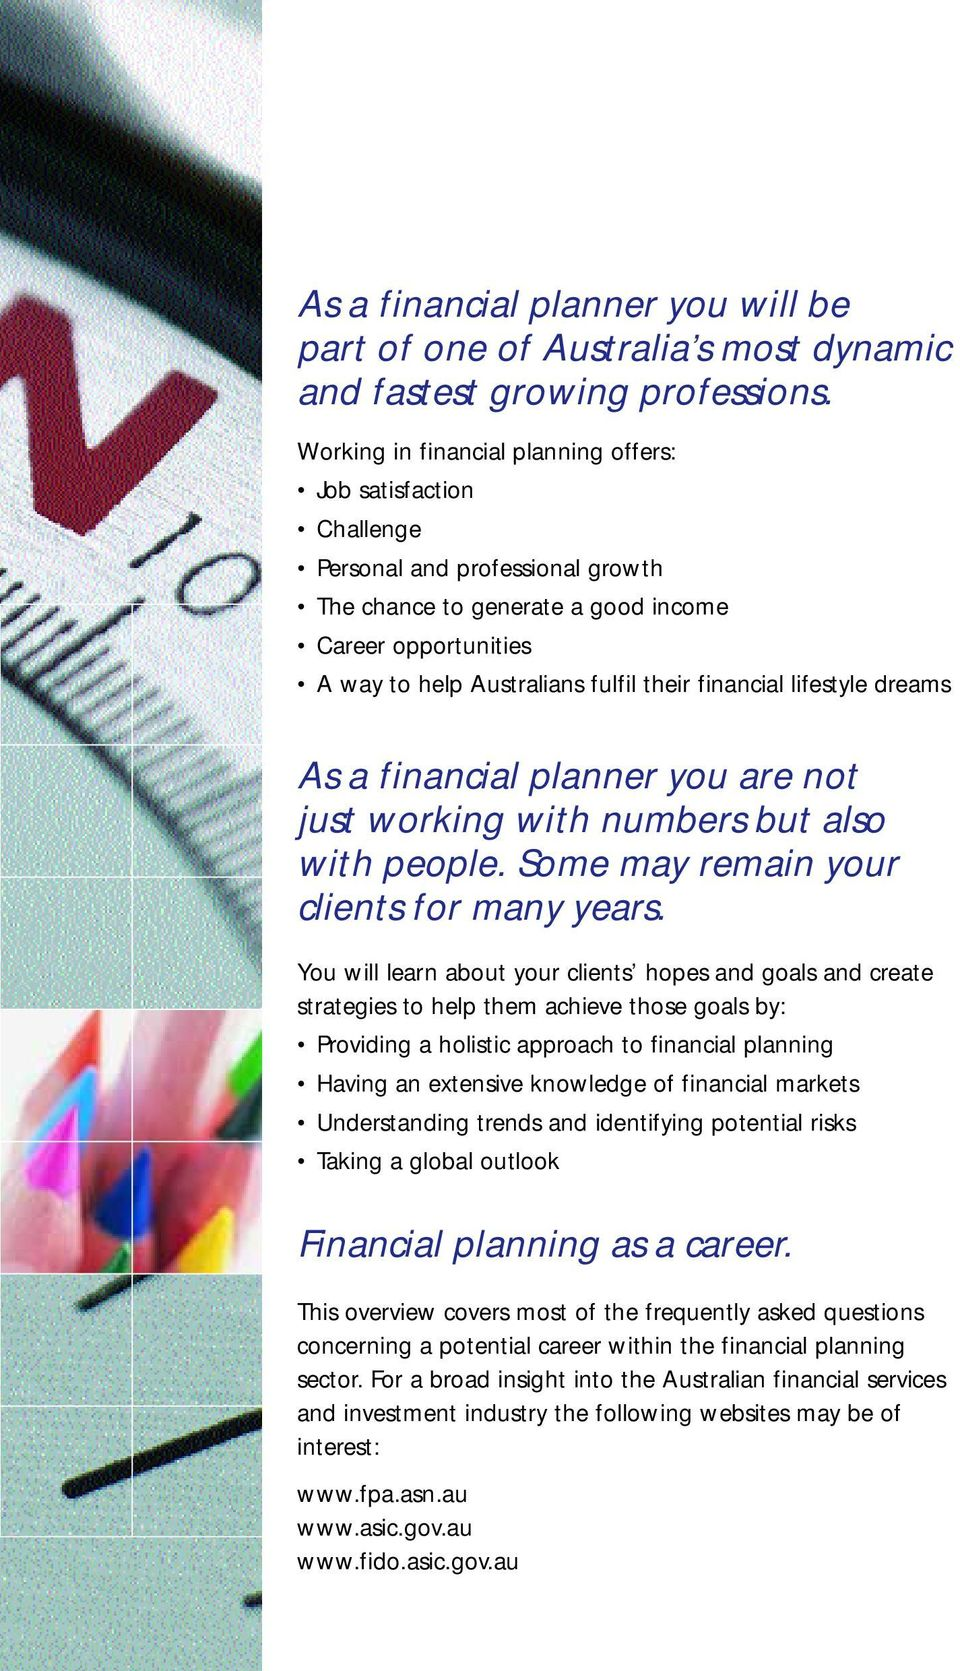 financial lifestyle dreams As a financial planner you are not just working with numbers but also with people. Some may remain your clients for many years.